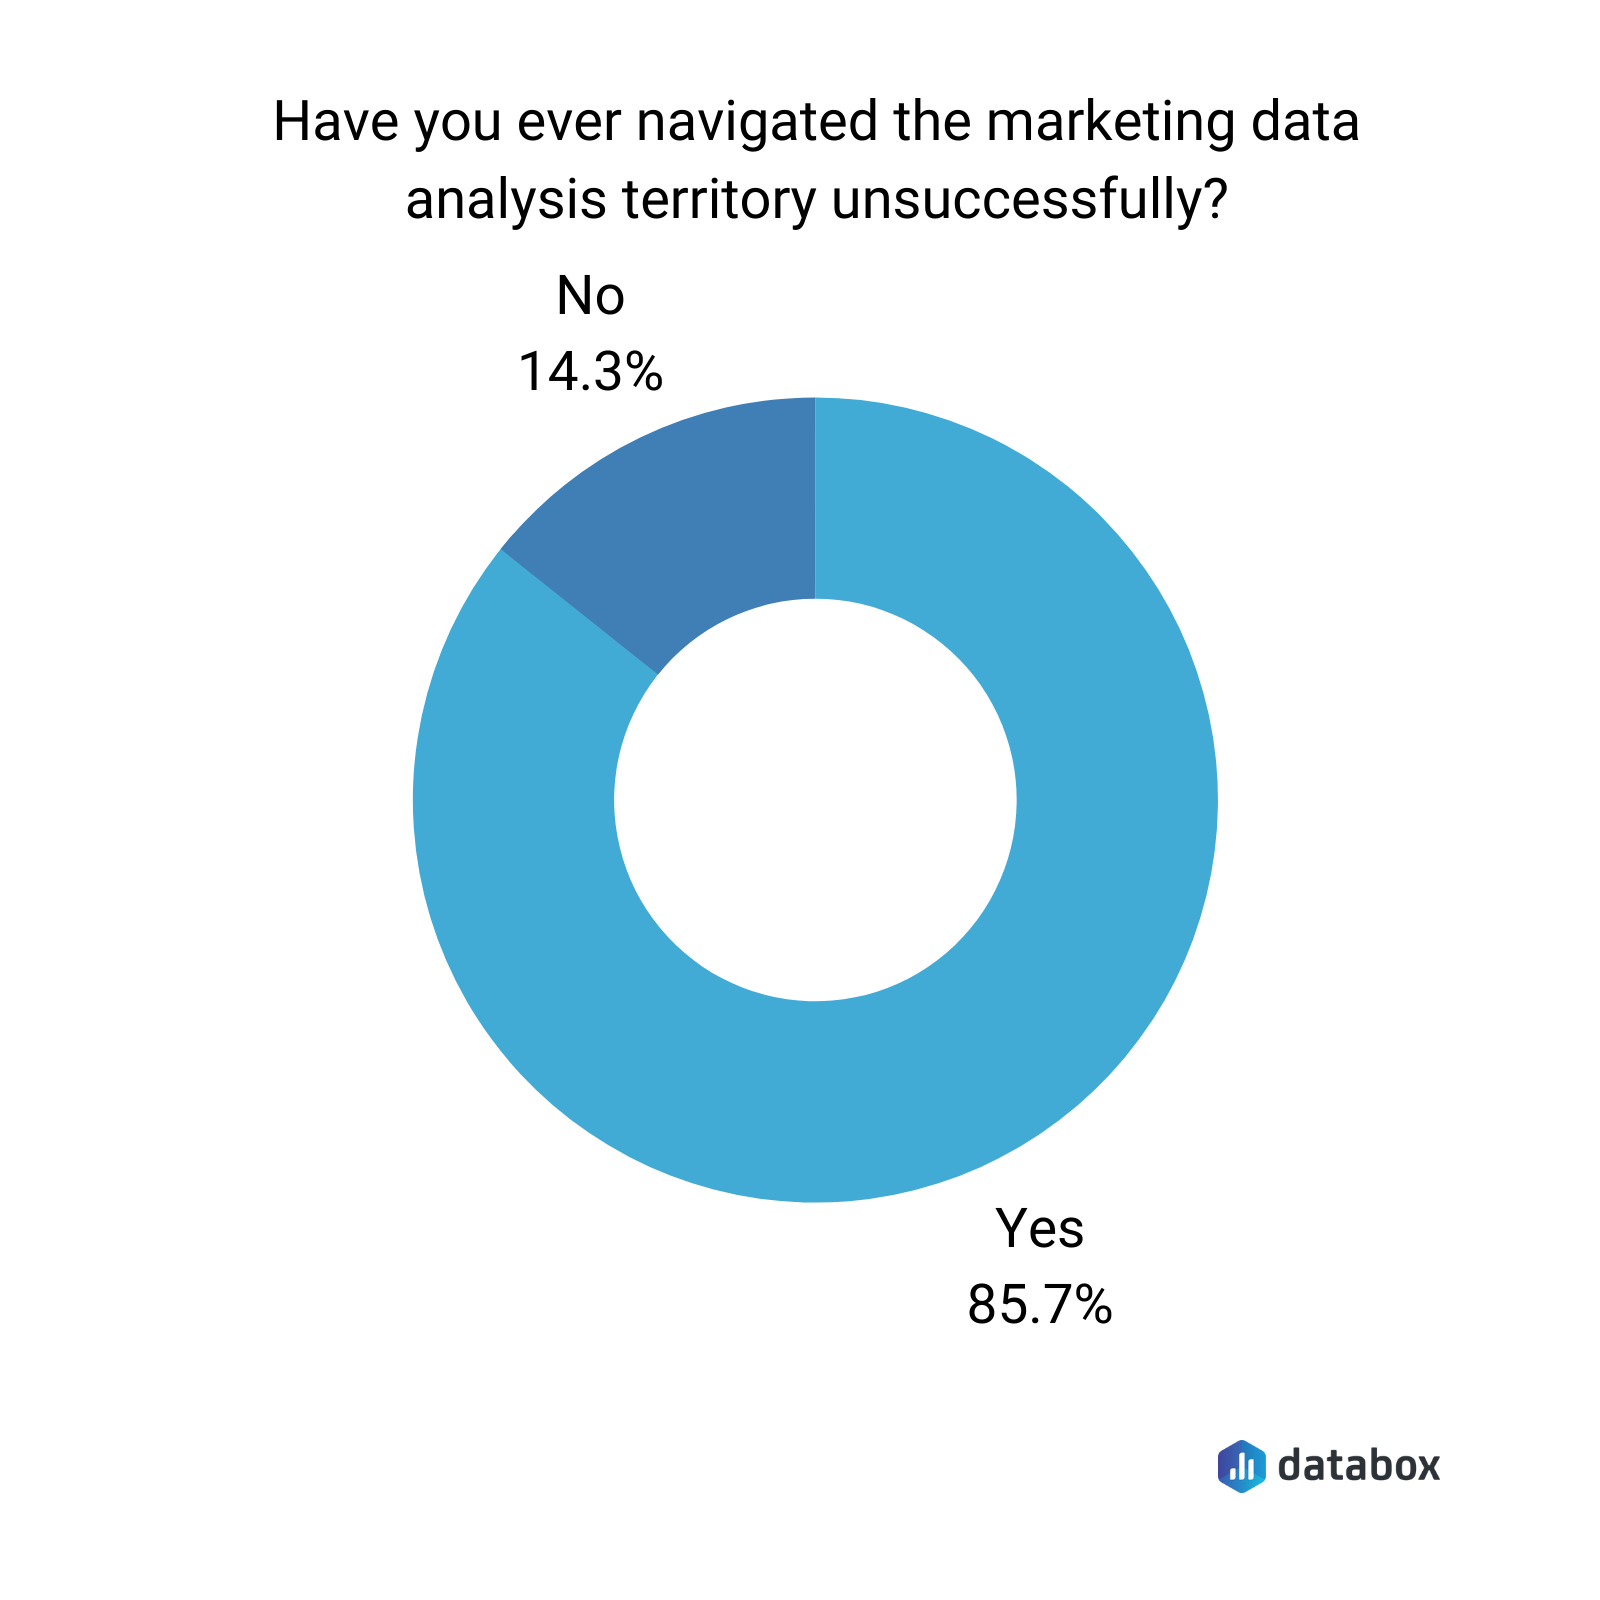 Marketing data analysis successfulness rate survey results